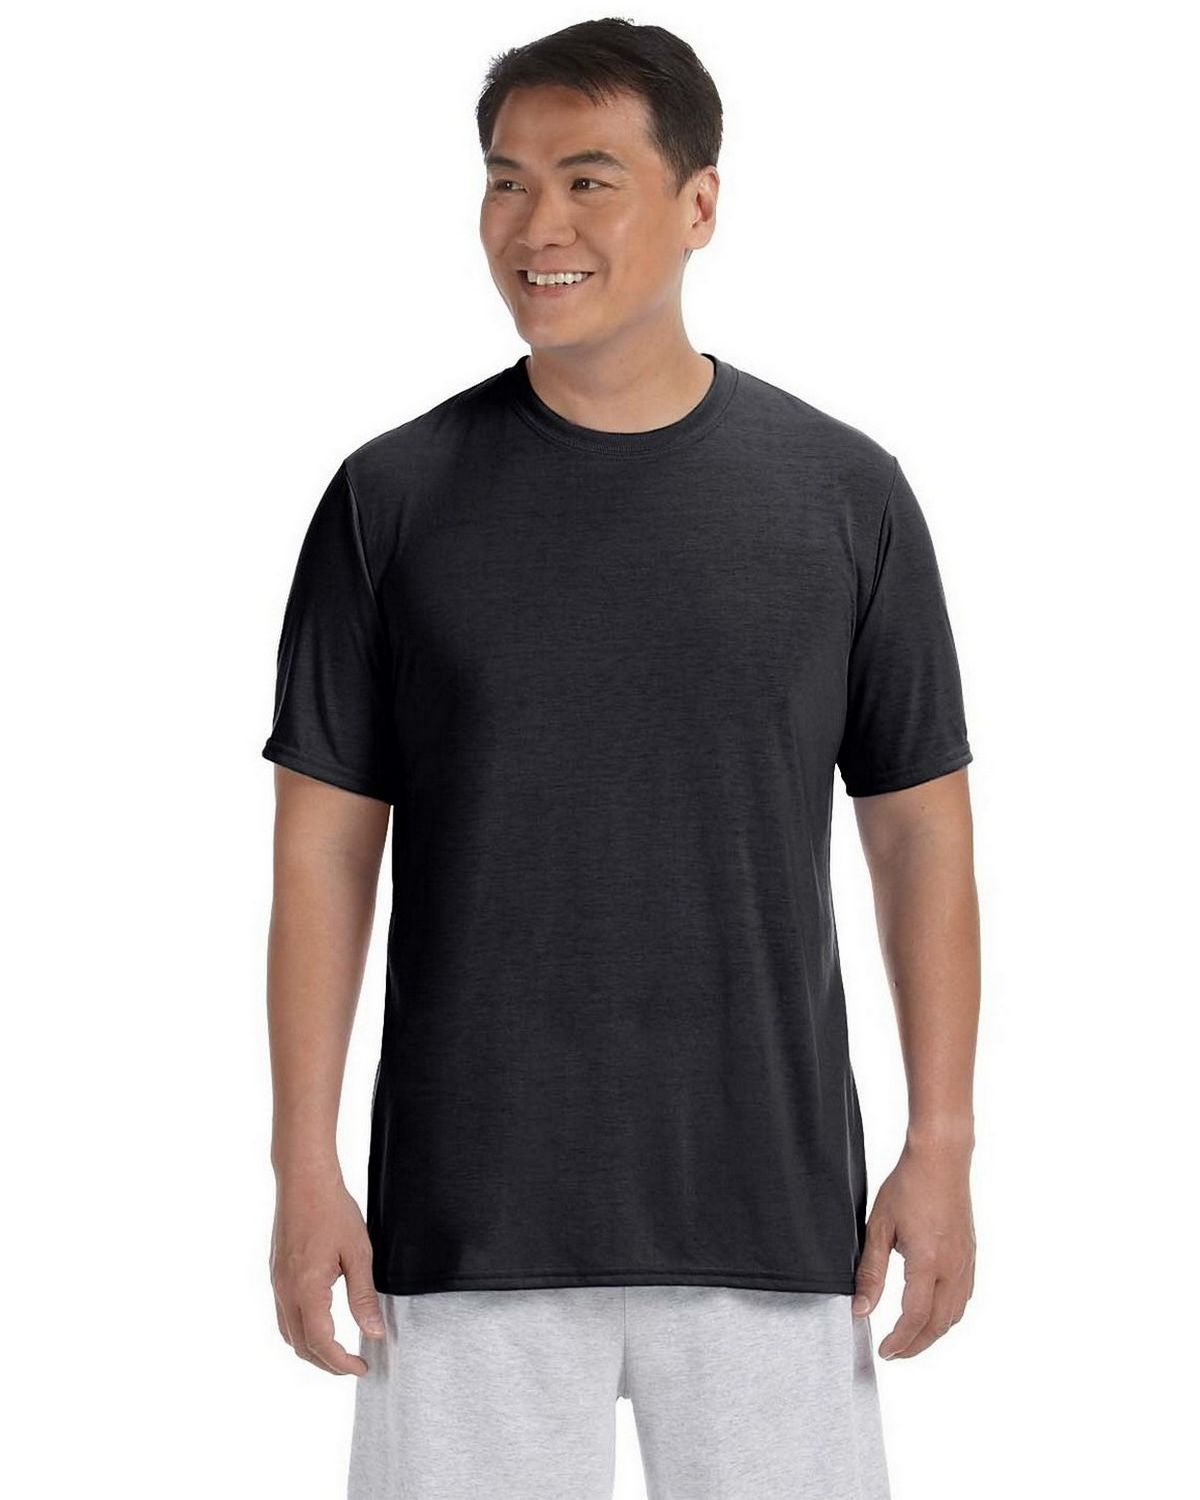 Gildan G420 Performance T-Shirt - Black - XL G420